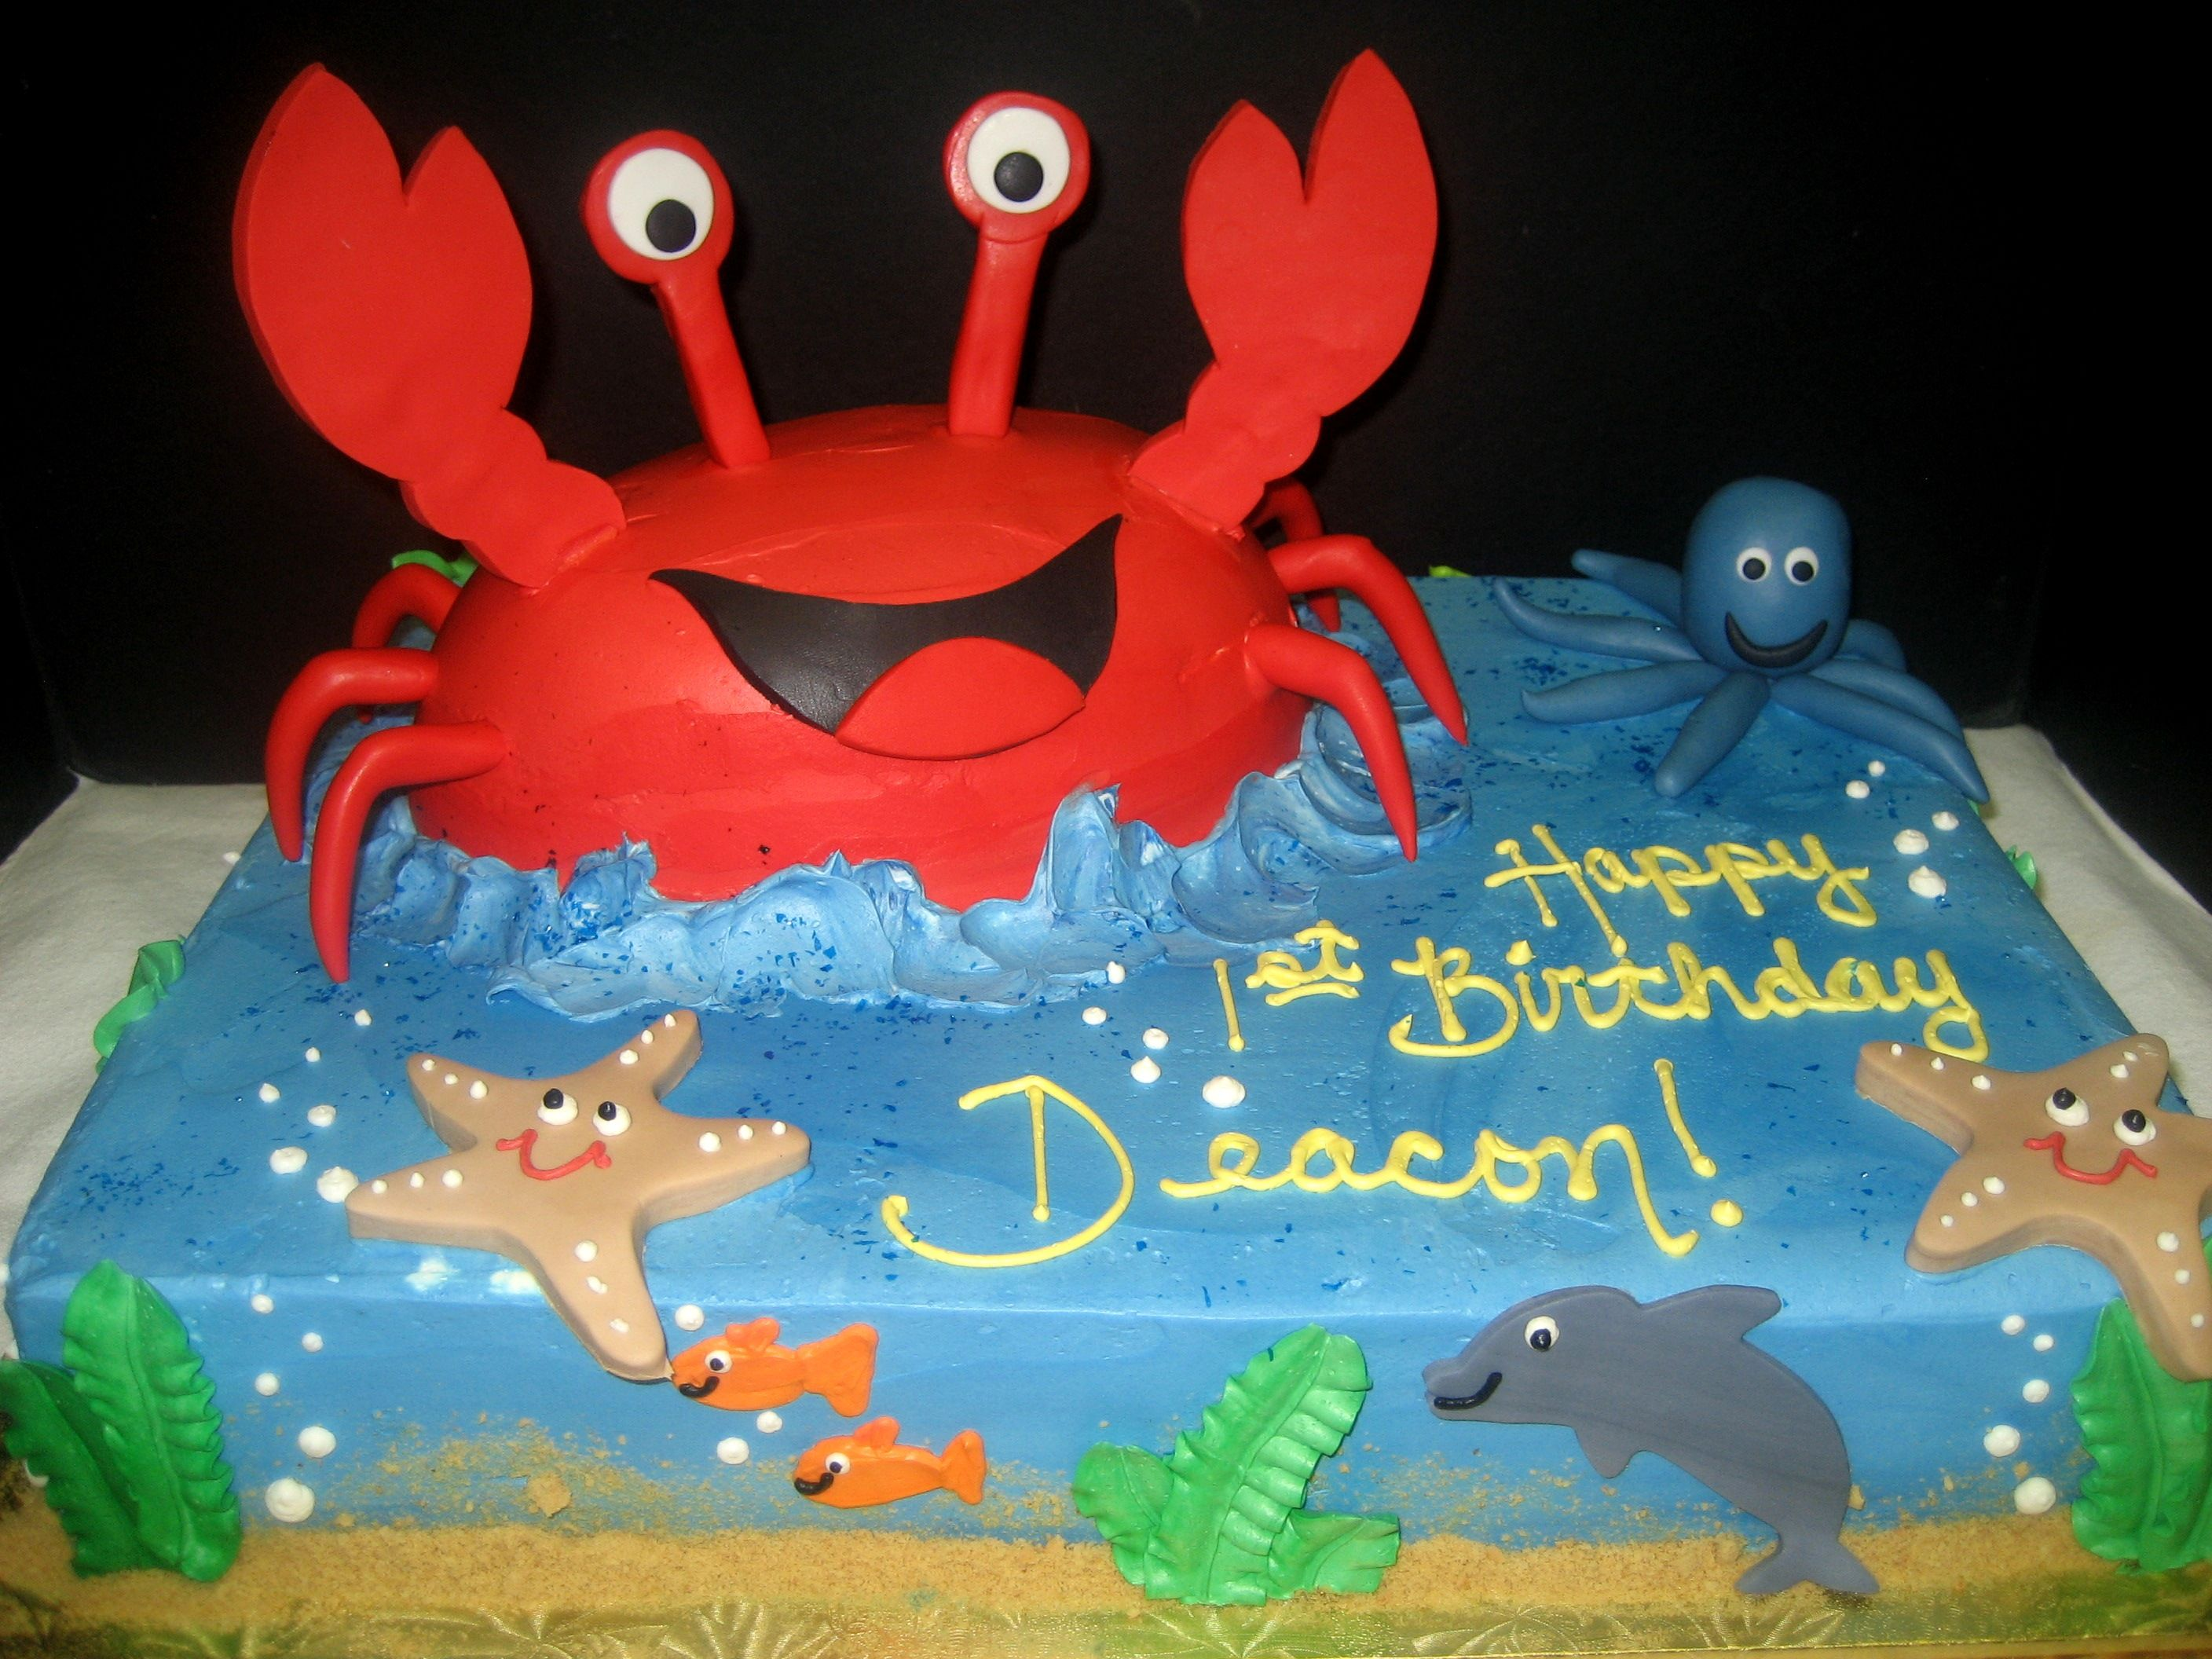 Sea Creature Themed Birthday Cake With 3d Crab Crab Birthday Cakes Themed Birthday Cakes Birthday